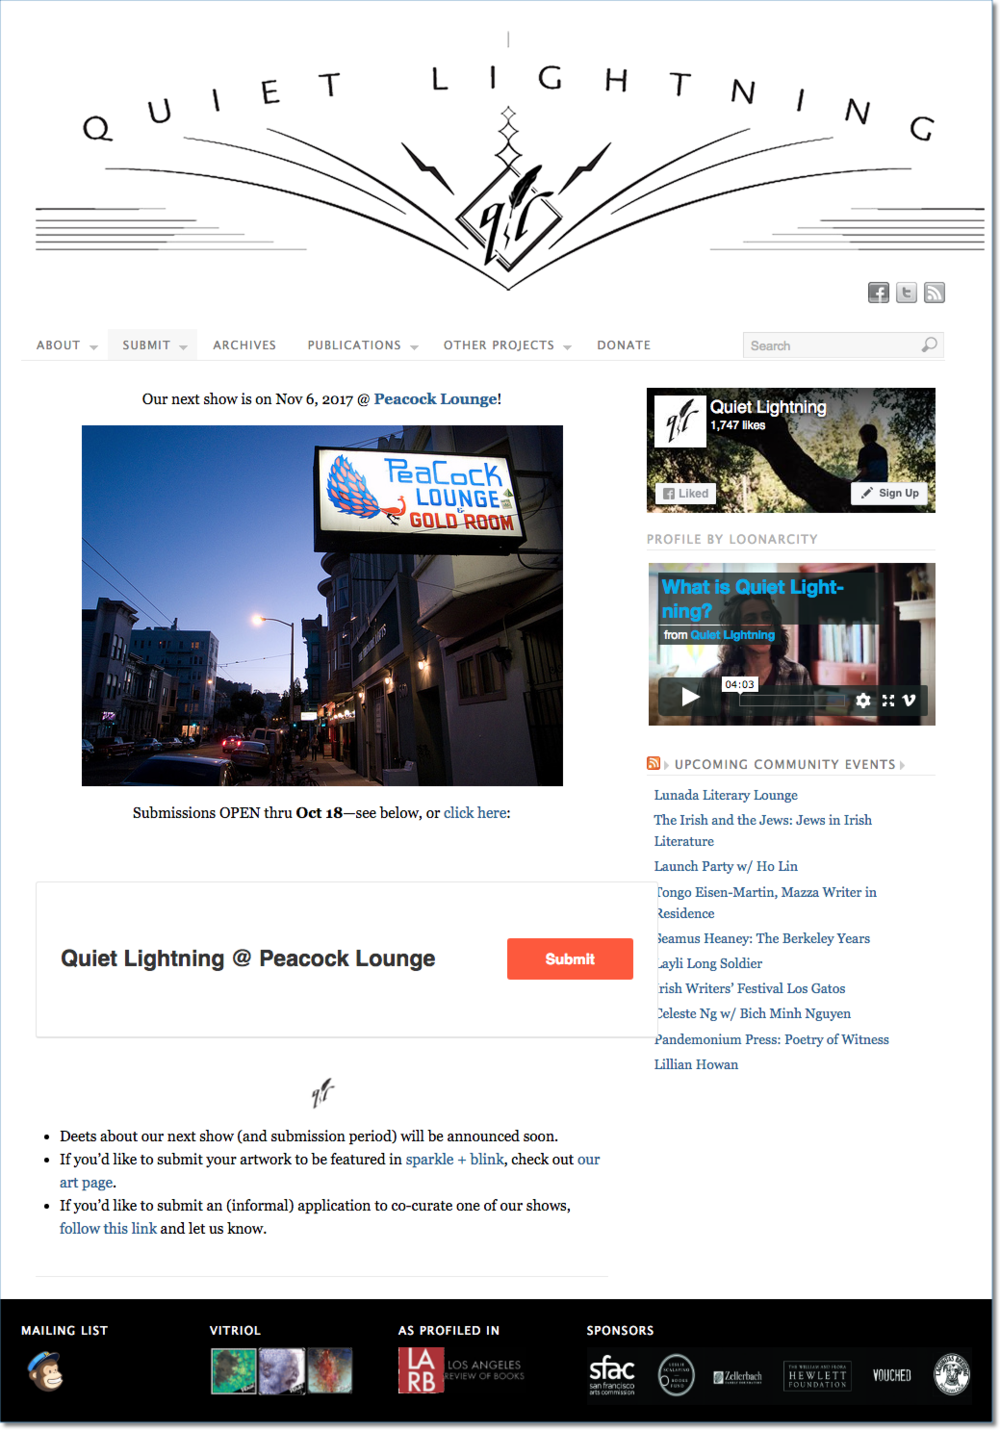 The Challenge: You Get What You Pay For - Quiet Lightning is an entirely volunteer-run organization, and the bootstrapping shows in the website. It's virtually unnavigable. It isn't built for social or mobile. Visually, it's...unfortunate-looking. Literature in San Francisco defines cool. This is Kerouac and Ginsberg, Twain, Steinbeck, Jack London. COOL. Passionate deliveries in dark dive bars. COOL. Quiet Lightning is cool! But their website delivered zero cool. It wasn't pretty, and it actually diverted users away from prime content. In a town that averages 40+ significant events competing per night, Quiet Lightning needed help producing an experience that built Anticipation, maximized the Happening, and elongated the Reliving of their can't-miss events.